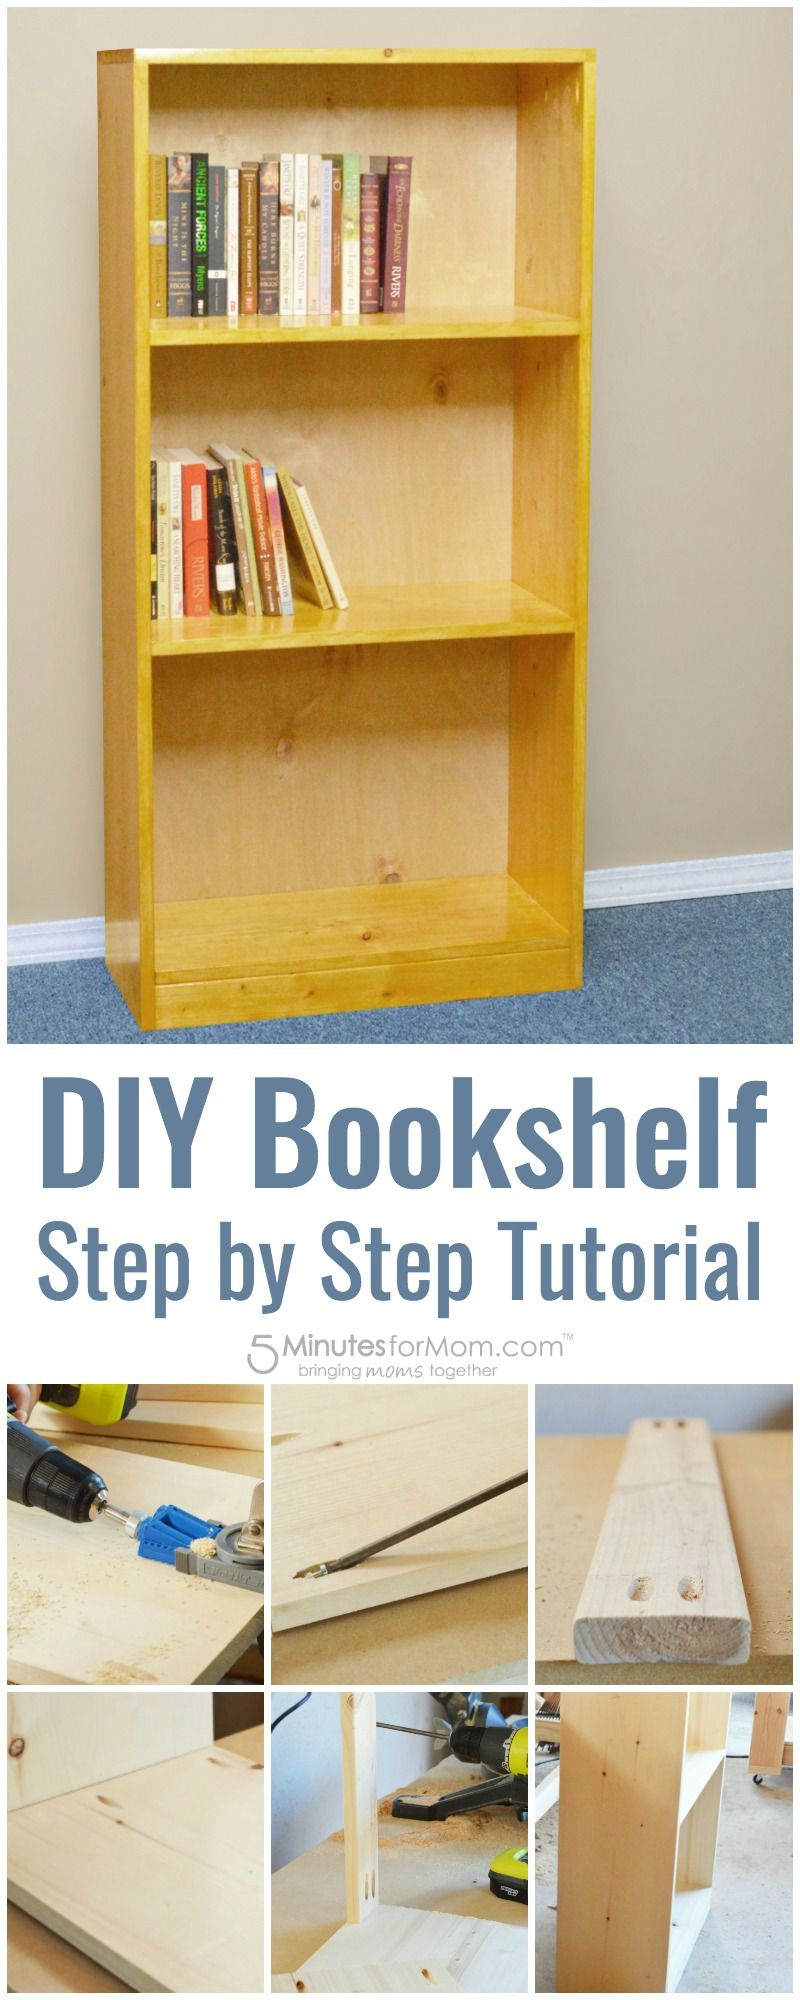 DIY Basic Bookshelf - How To Build A Bookcase For Beginners in 2018 ...